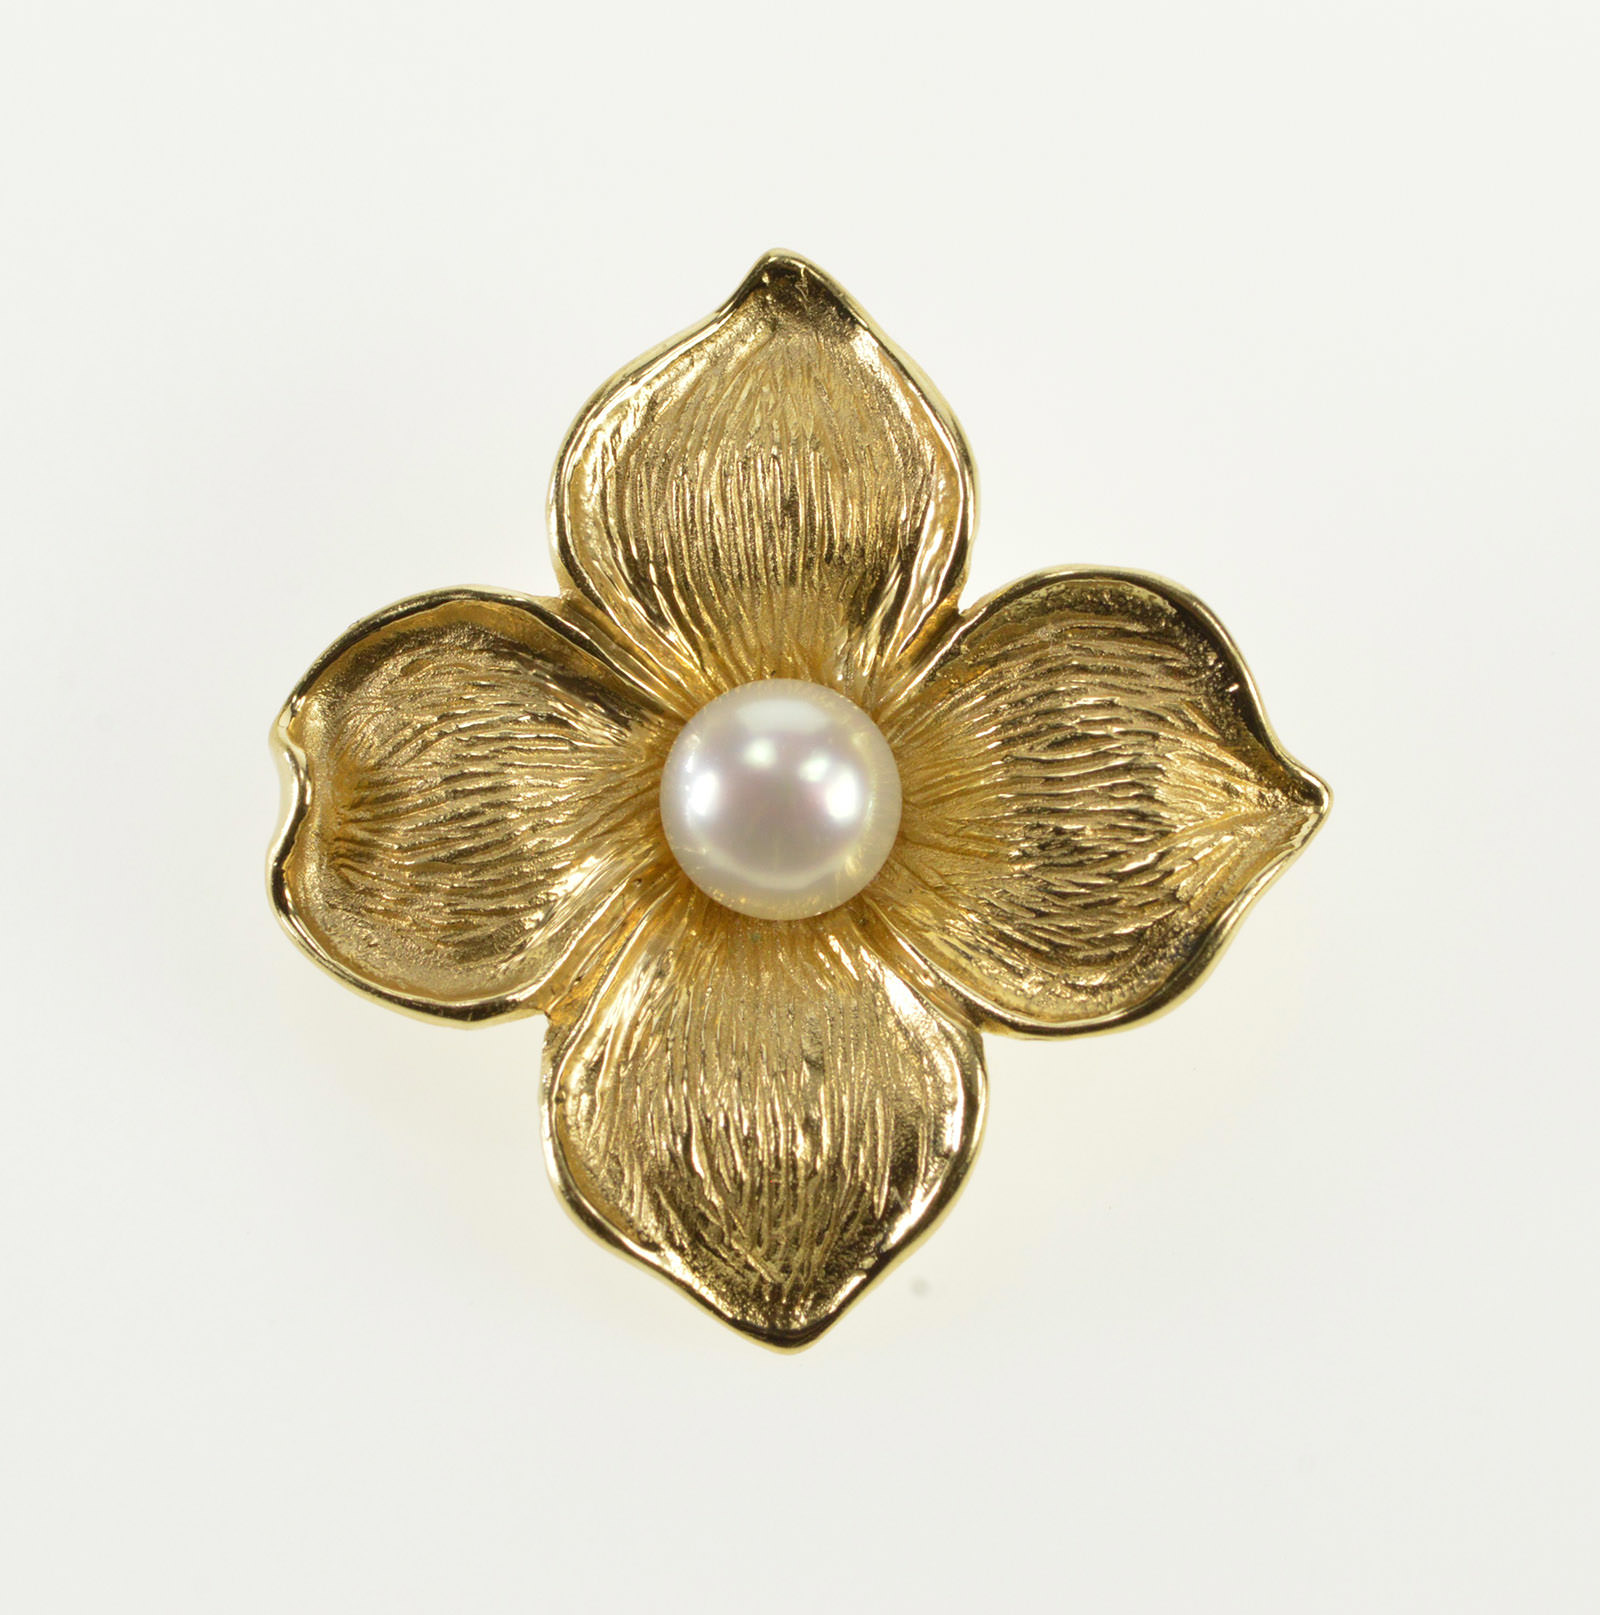 b52d18738be8e 14K Pearl Inset 3D Dogwood Flower Floral Yellow Gold Pin/Brooch ...